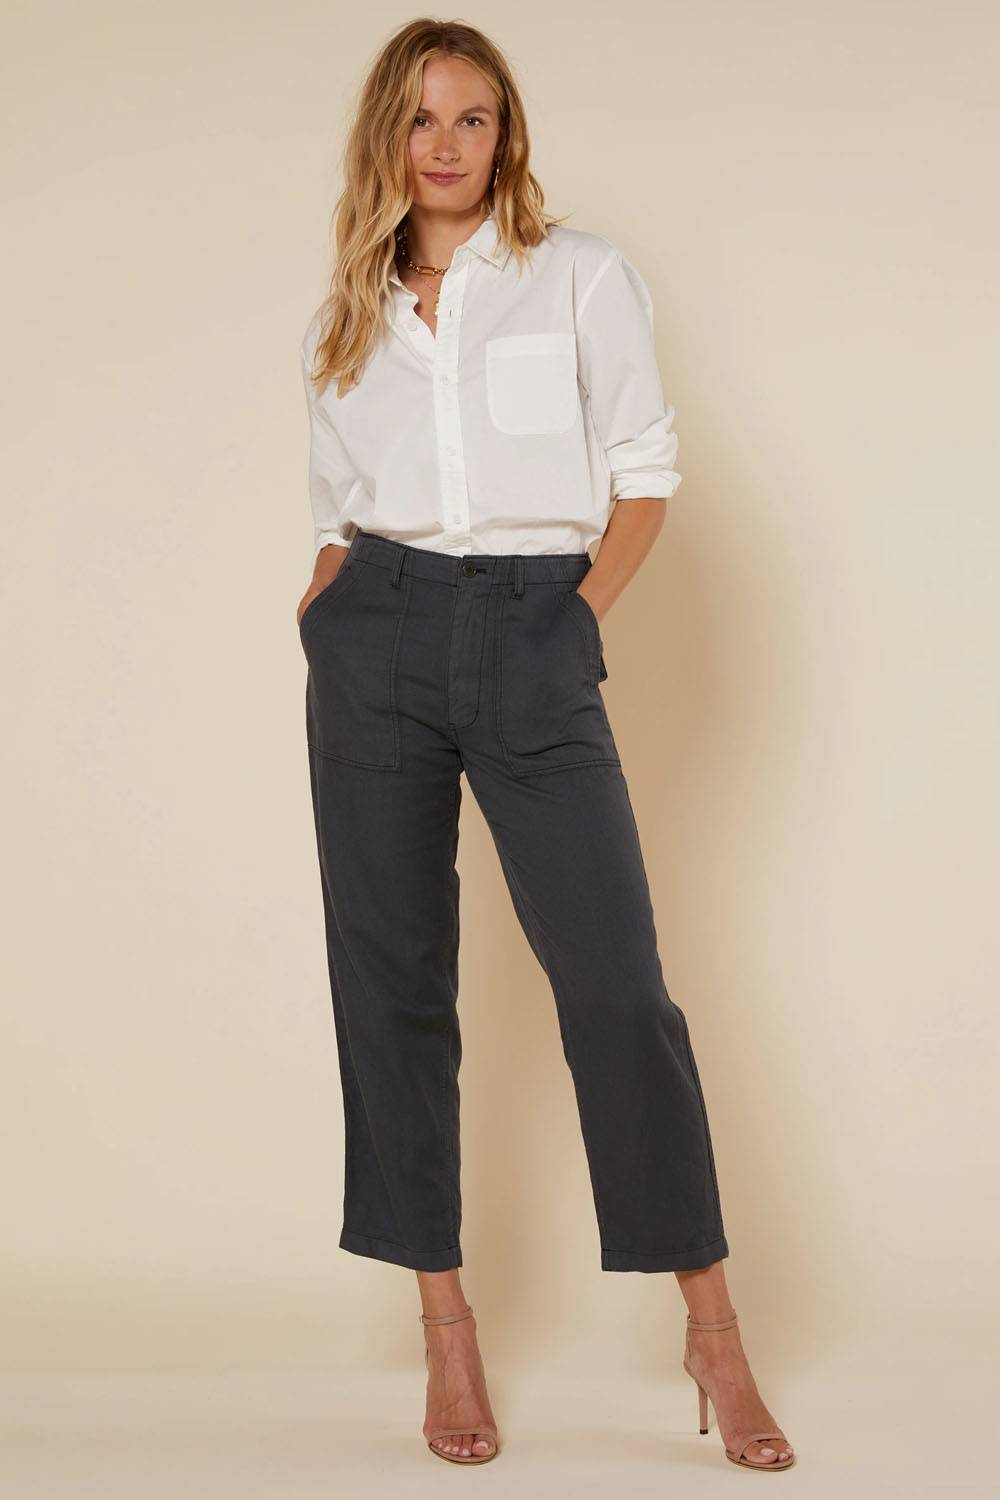 outerknown usa cheap work pants